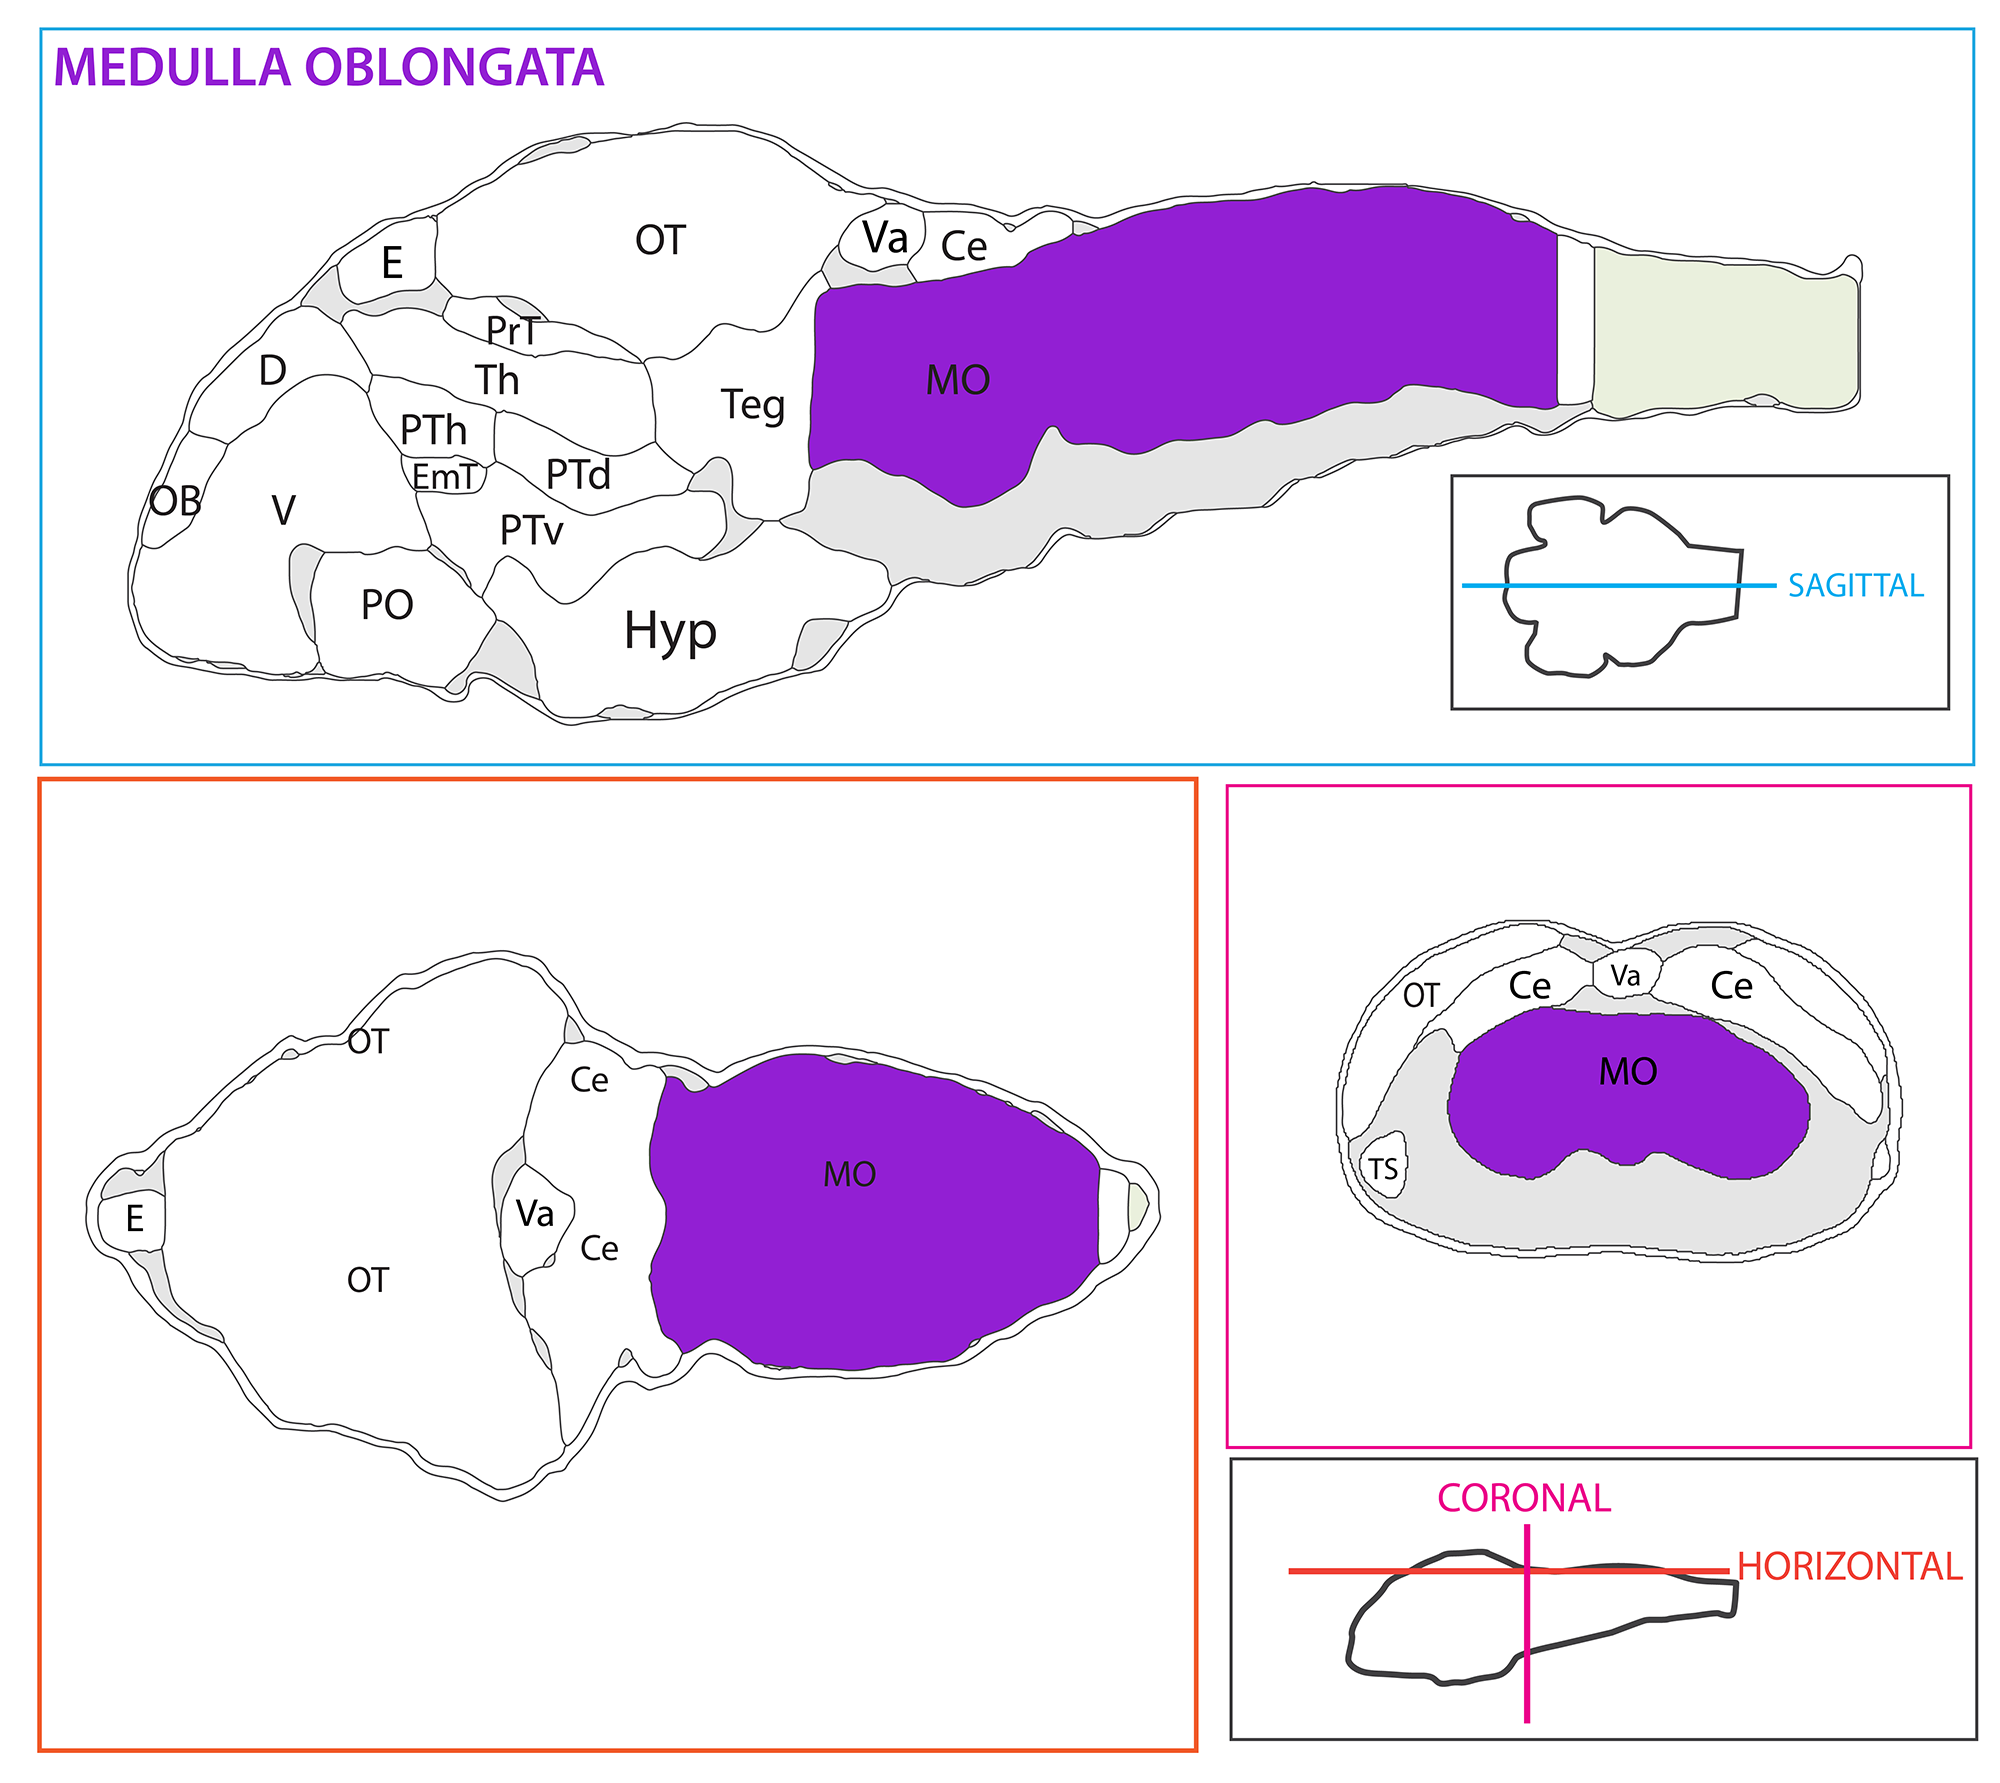 Schematic showing the position of the medulla oblongata in sagittal, horizontal and coronal sections through the zebrafish brain.  Based on the anatomical segmentation of 3 day old zebrafish larval brain by Thomas Müller, Olaf Ronneberger, Wolfgang Driever and colleagues. For details see Ronneberger et al., Nat. Meth. 2012 and  http://vibez.informatik.uni-freiburg.de   Abbreviations: Ce, cerebellar plate; D, dorsal telencephalon/pallium; E, epiphysis; EmT, eminentia thalami; Hb, habenula; Hyp, hypothalamus; MO, medulla oblongata; OB, olfactory bulb; OT, optic tectum; PG, preglomerular complex; PO, preoptic area;PrT, pretectum; PTd, posterior tuberculum dorsal part; PTh, prethalamus; PTv posterior tuberculum ventral part; Teg, tegmentum; Th, thalamus; TS, torus semicircularis; V, ventral telencephalon/subpallium; Va, valvula cerebelli.